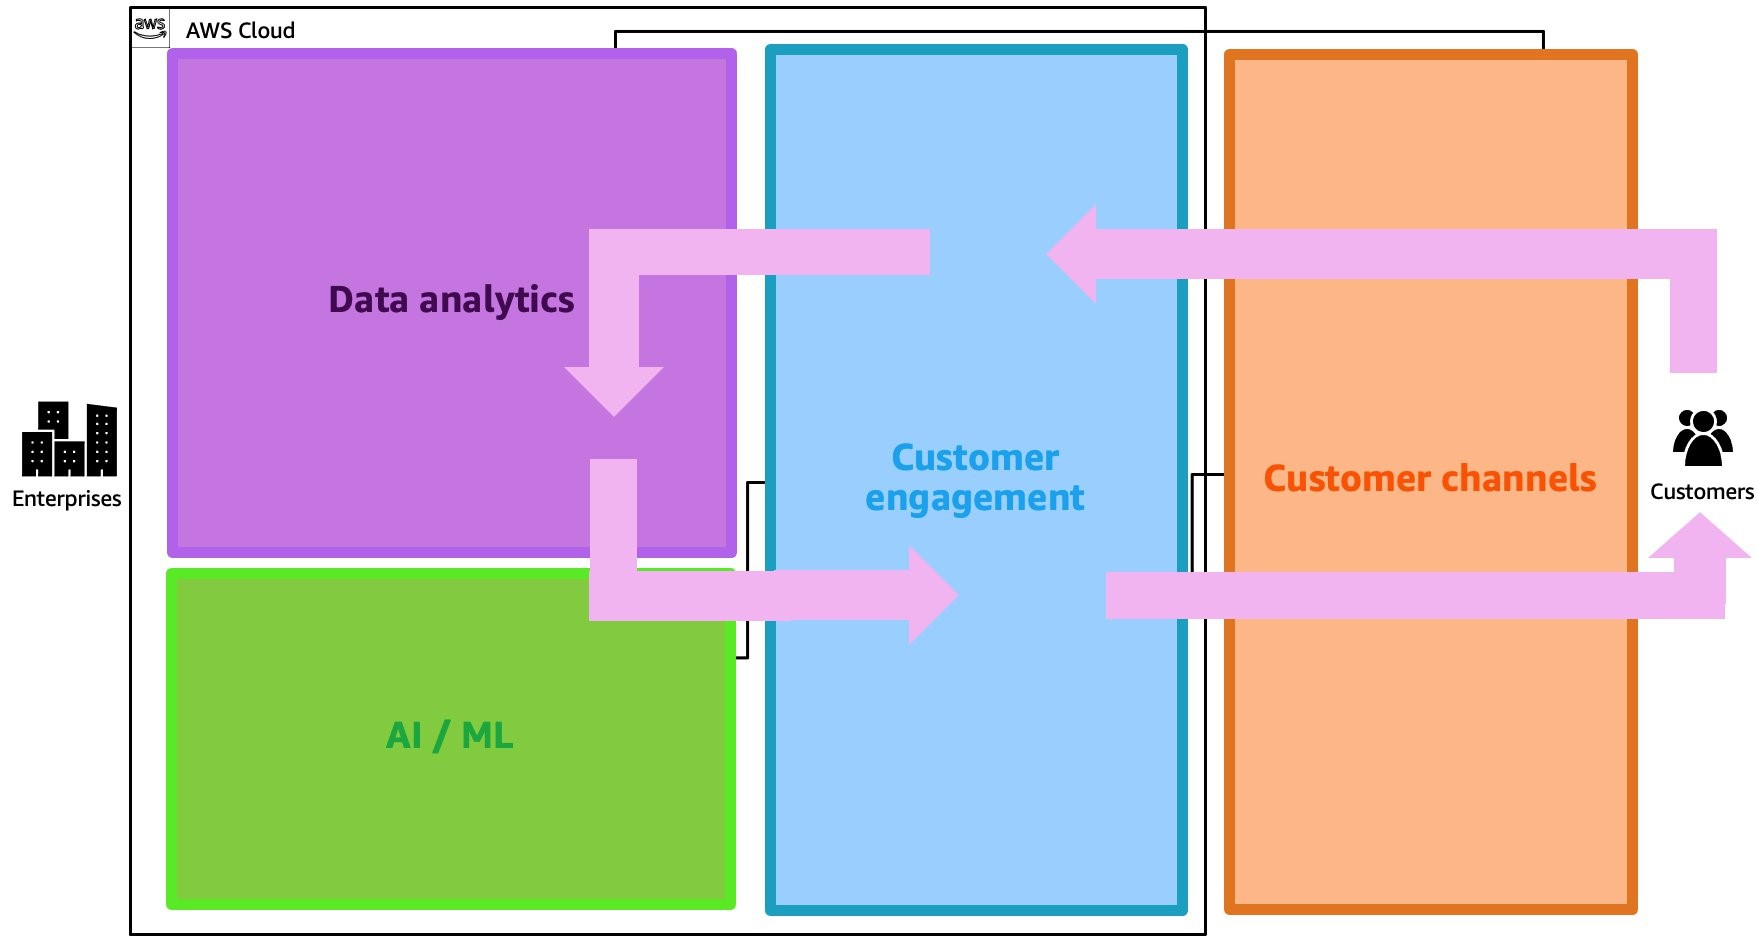 Intelligent cross-channel customer engagement with real-time feedback loop